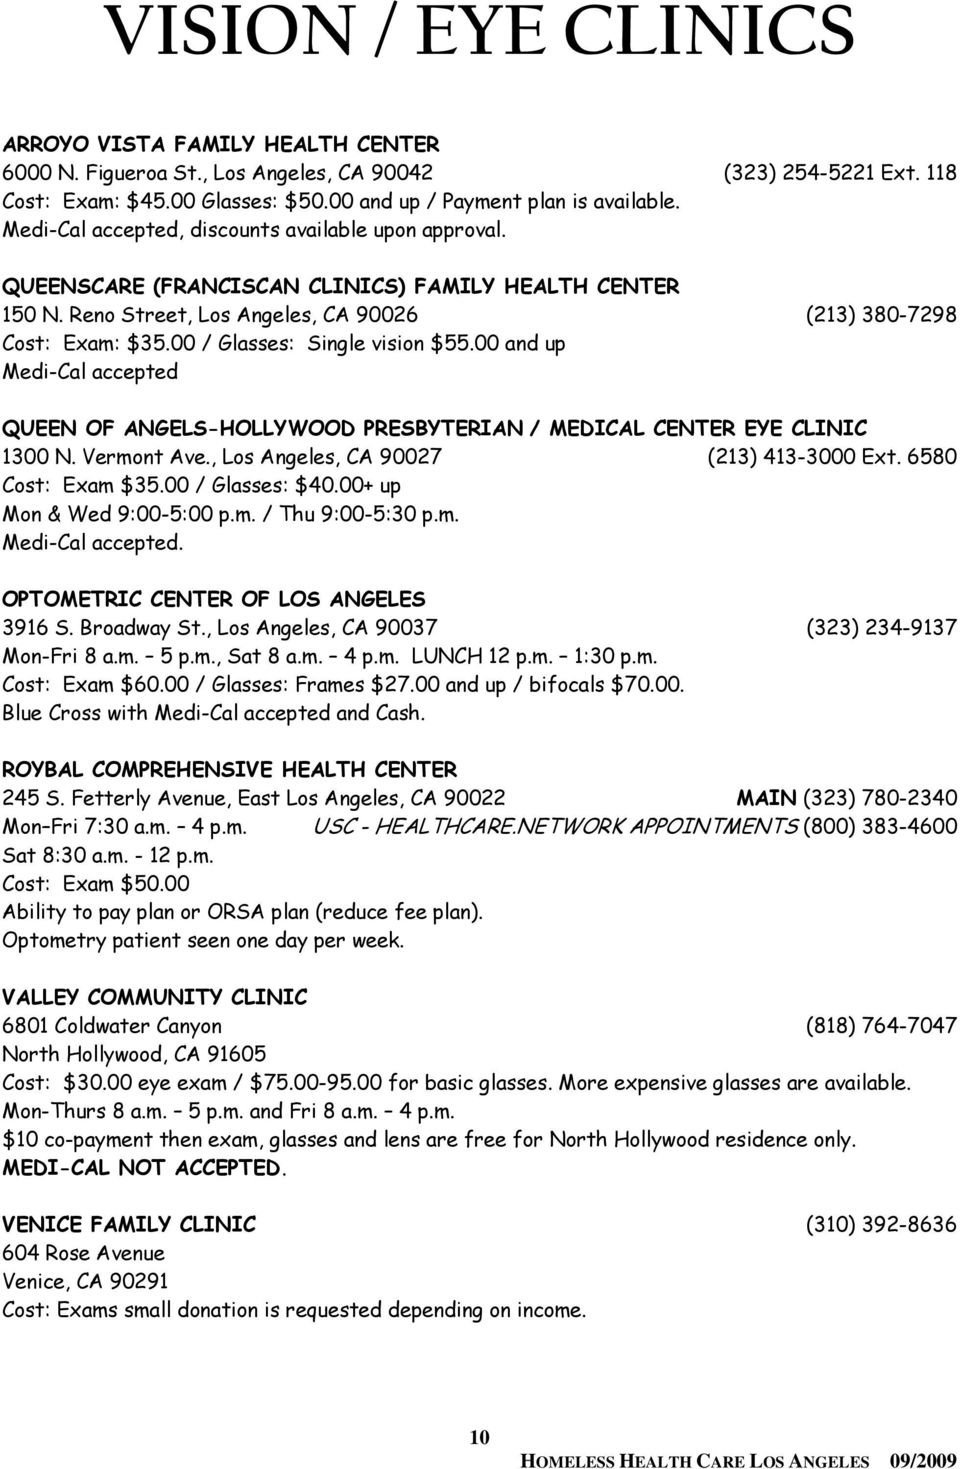 00 / Glasses: Single vision $55.00 and up Medi-Cal accepted QUEEN OF ANGELS-HOLLYWOOD PRESBYTERIAN / MEDICAL CENTER EYE CLINIC 1300 N. Vermont Ave., Los Angeles, CA 90027 (213) 413-3000 Ext.